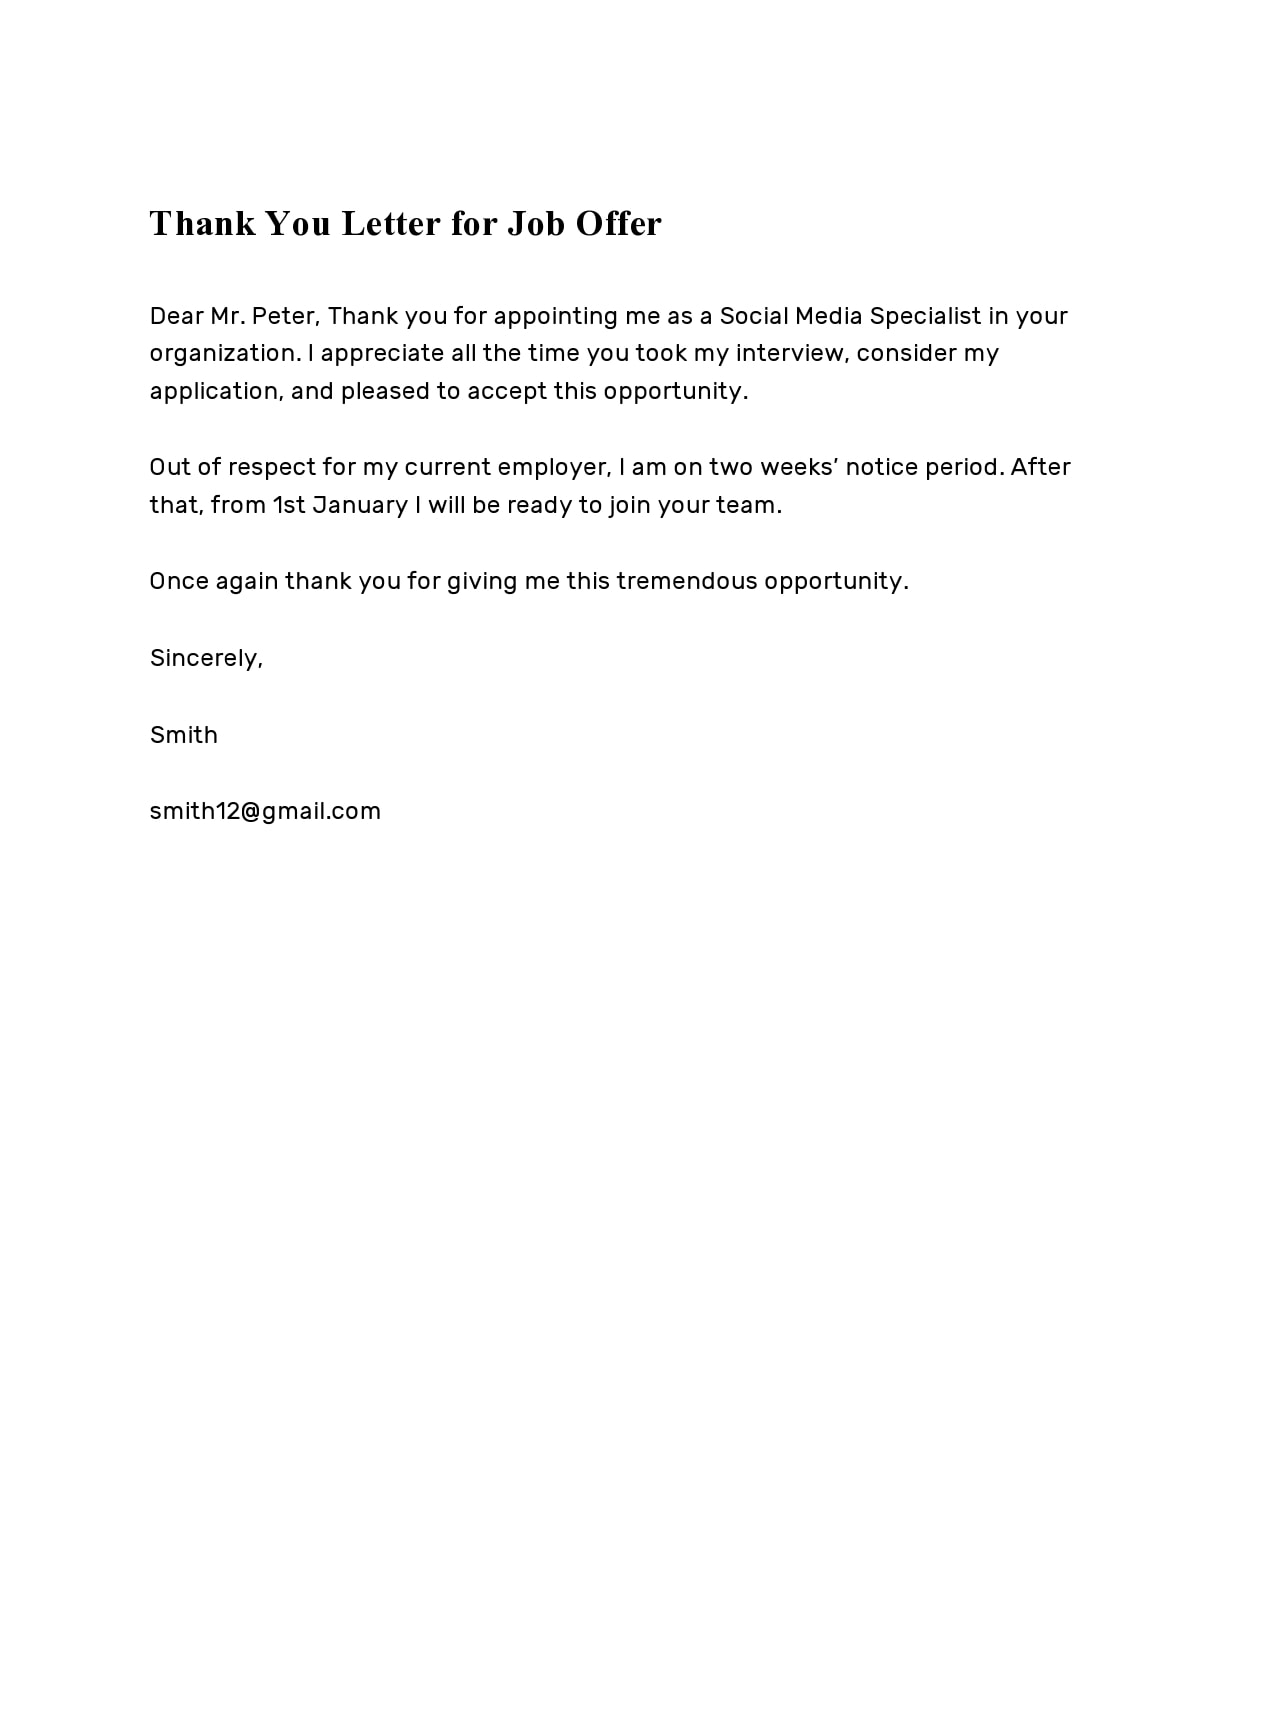 Employer Thank You Letter from templatearchive.com